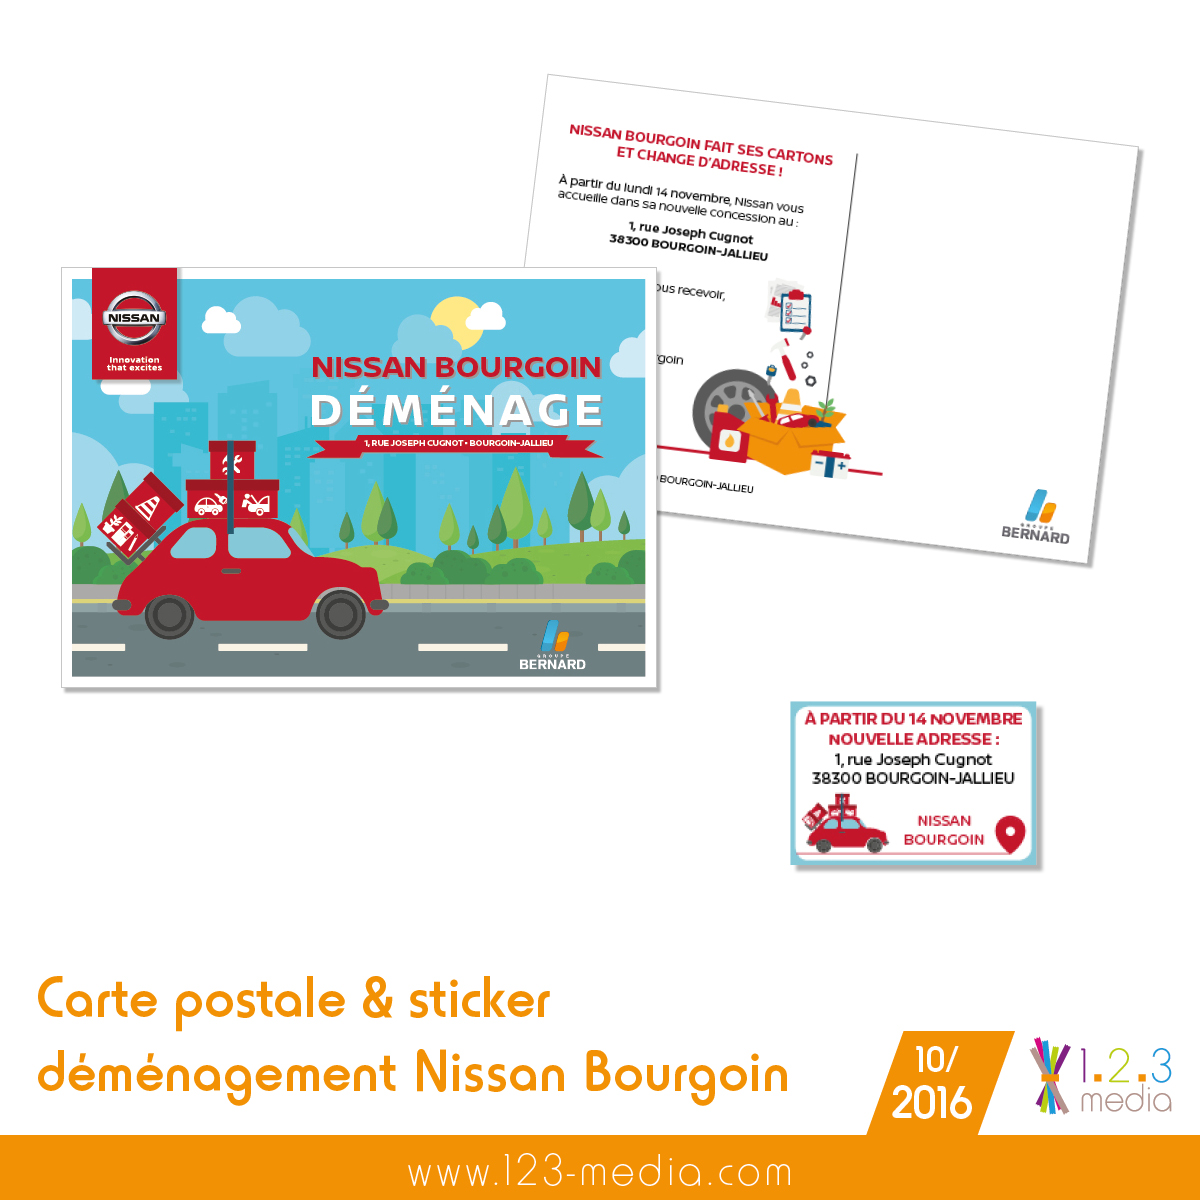 carte postale demenagement nissan bourgoin